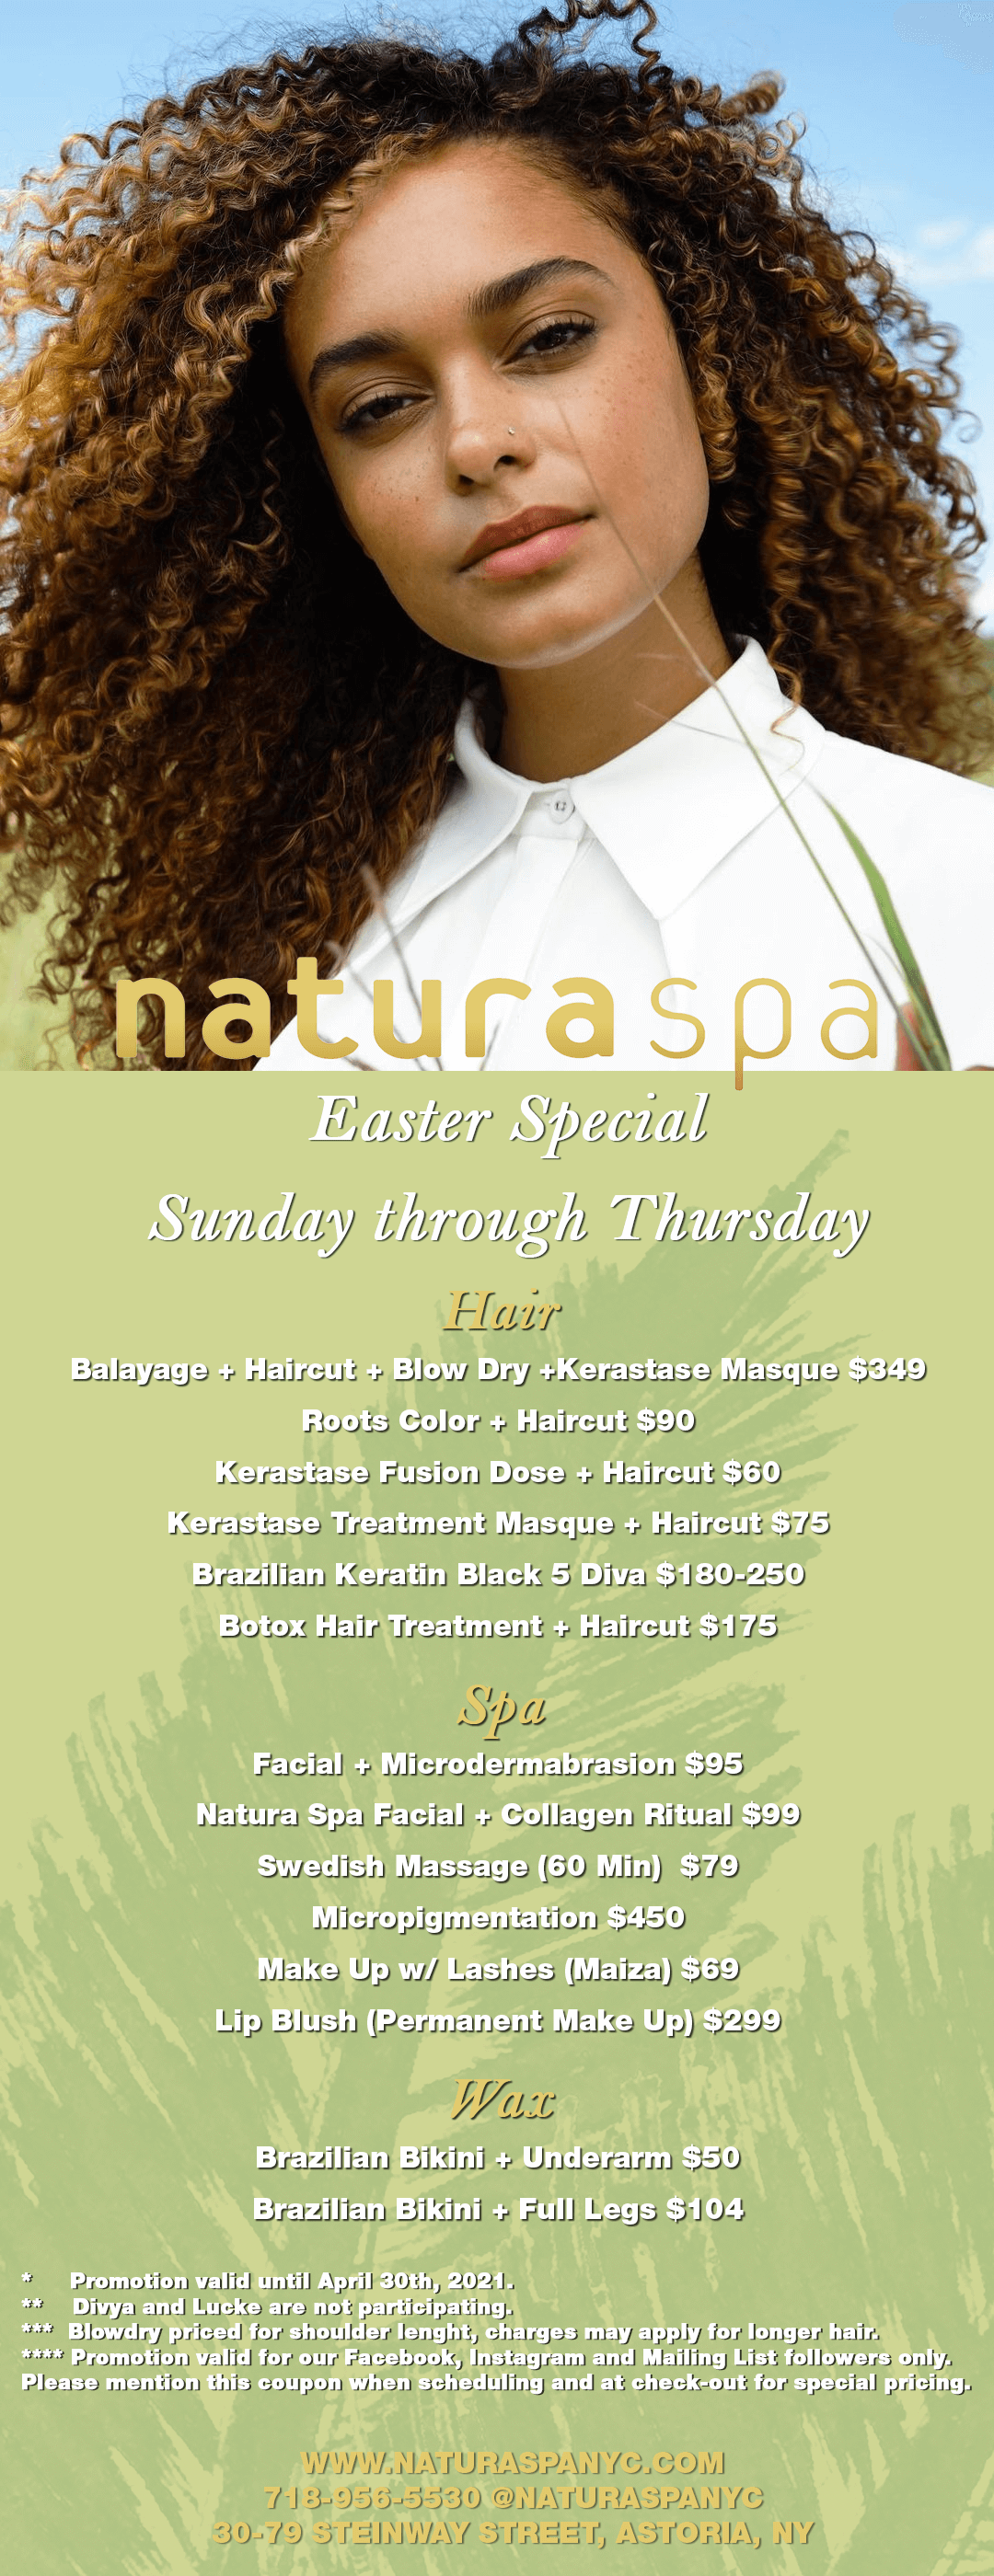 Natura Spa Easter Special